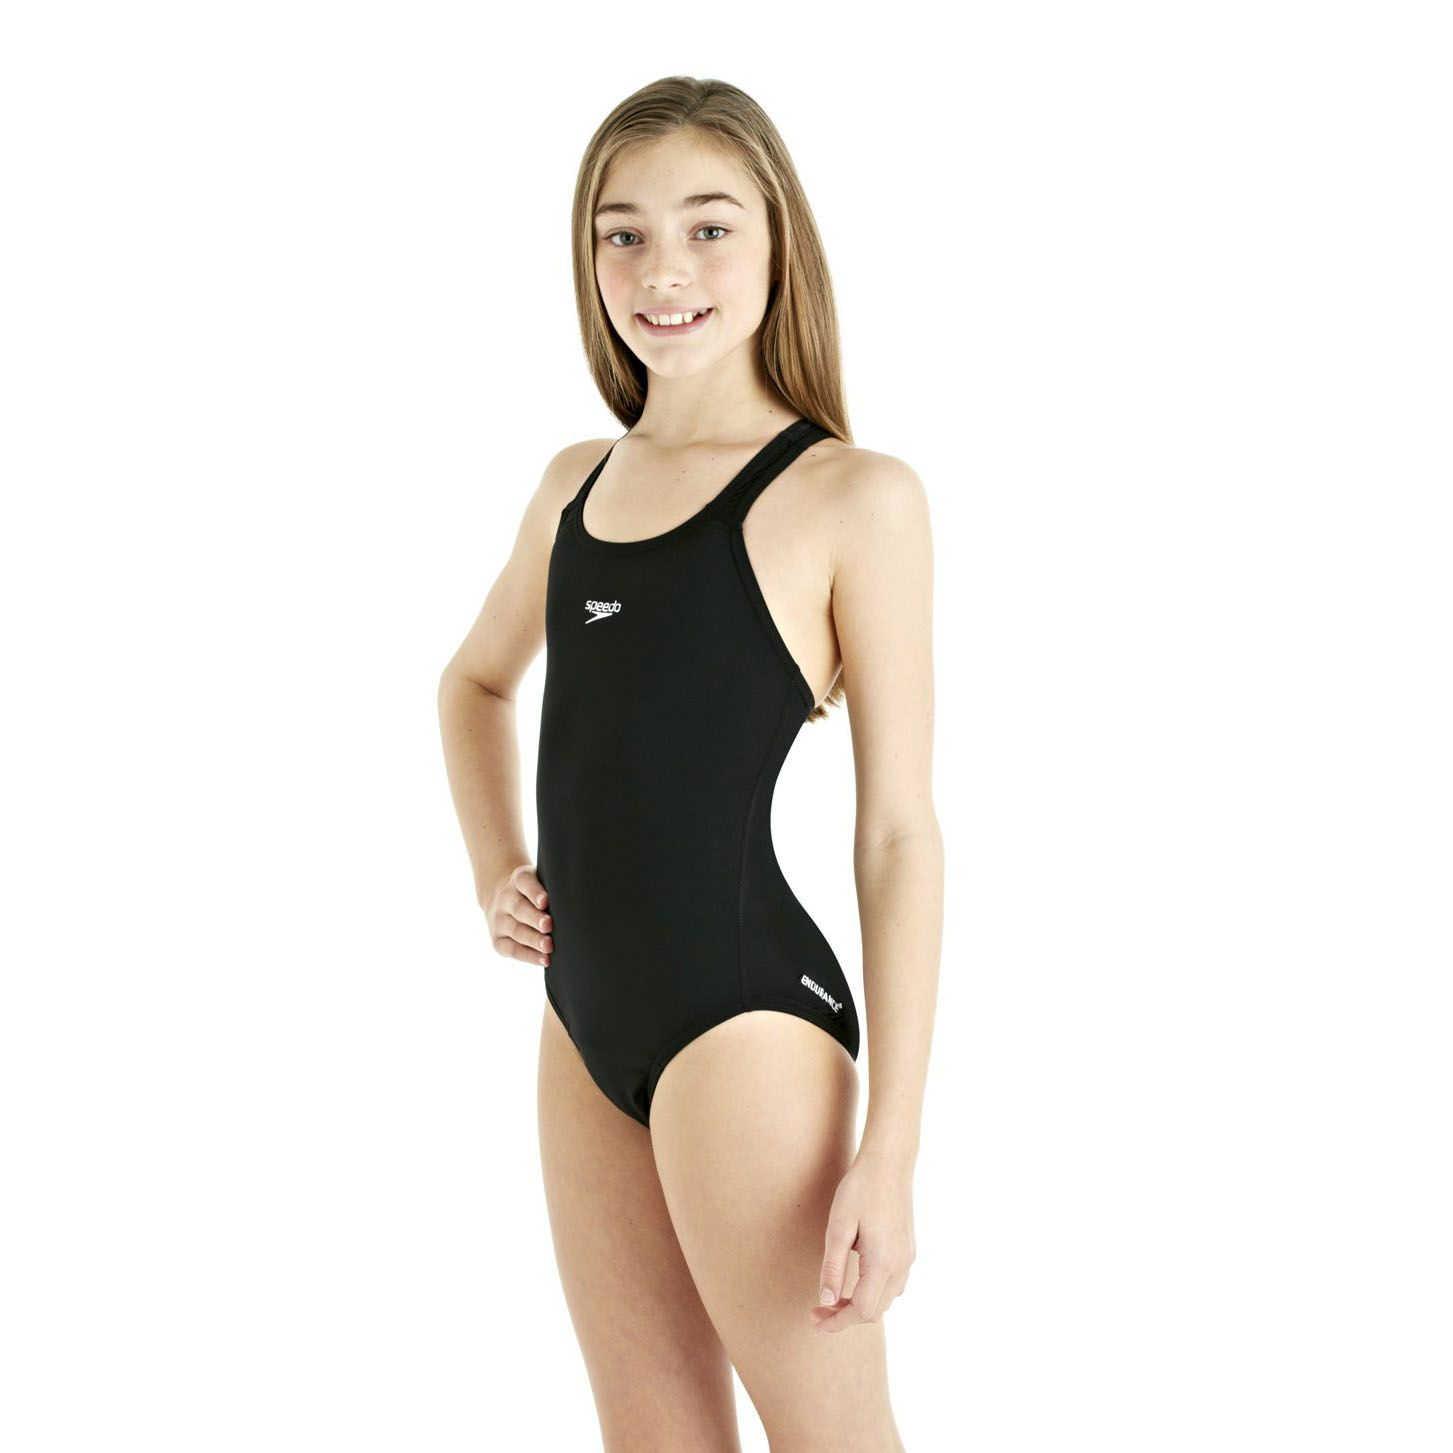 Girl With Swimsuit